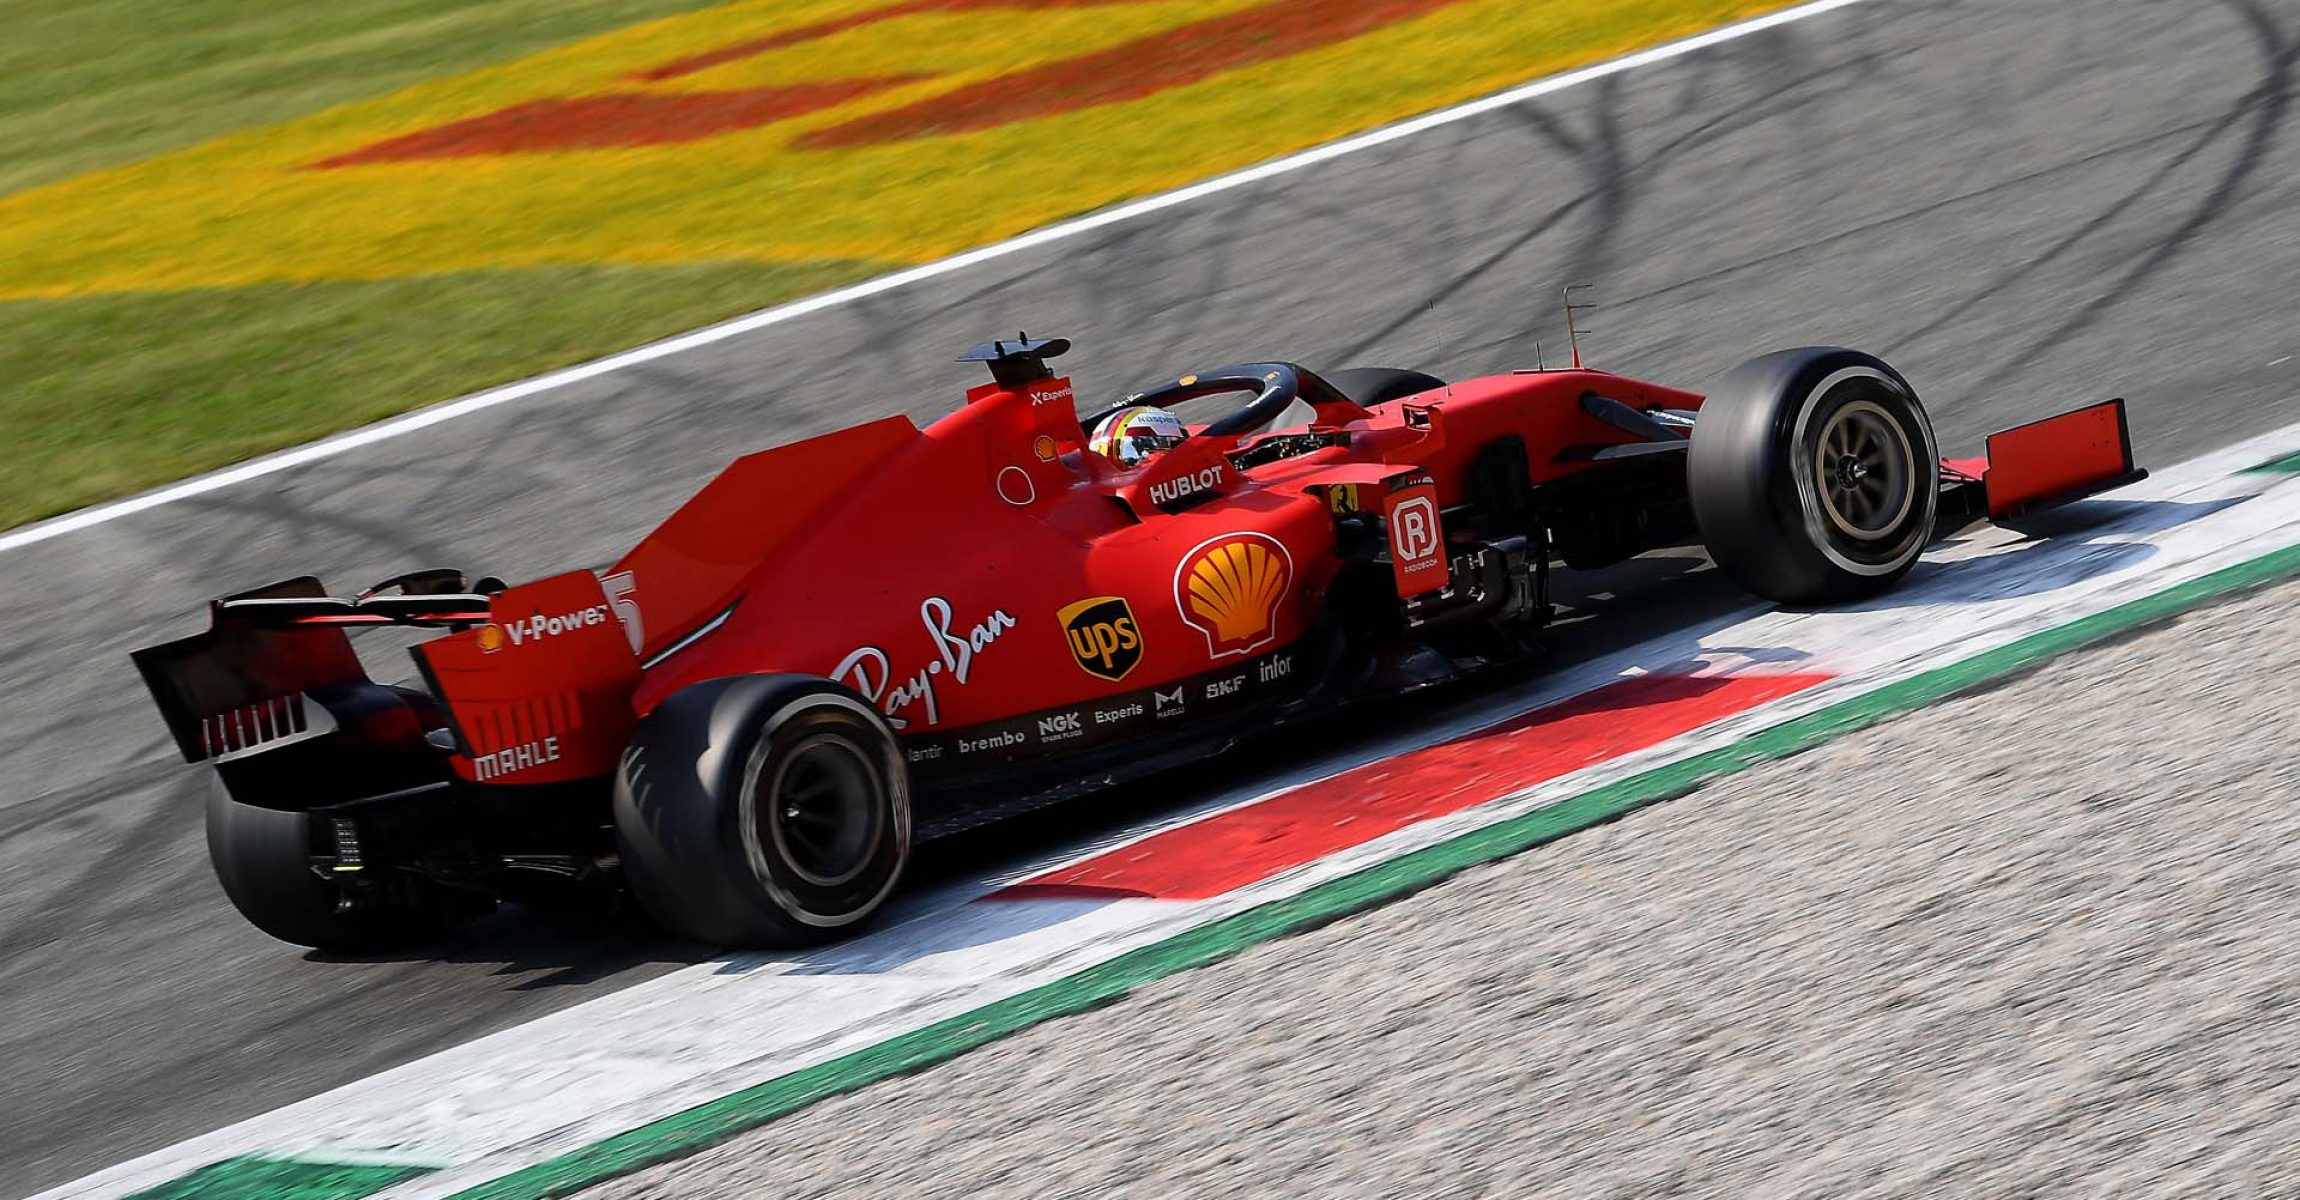 GP ITALIA F1/2020 -  DOMENICA 06/09/2020   credit: @Scuderia Ferrari Press Office Sebastian Vettel